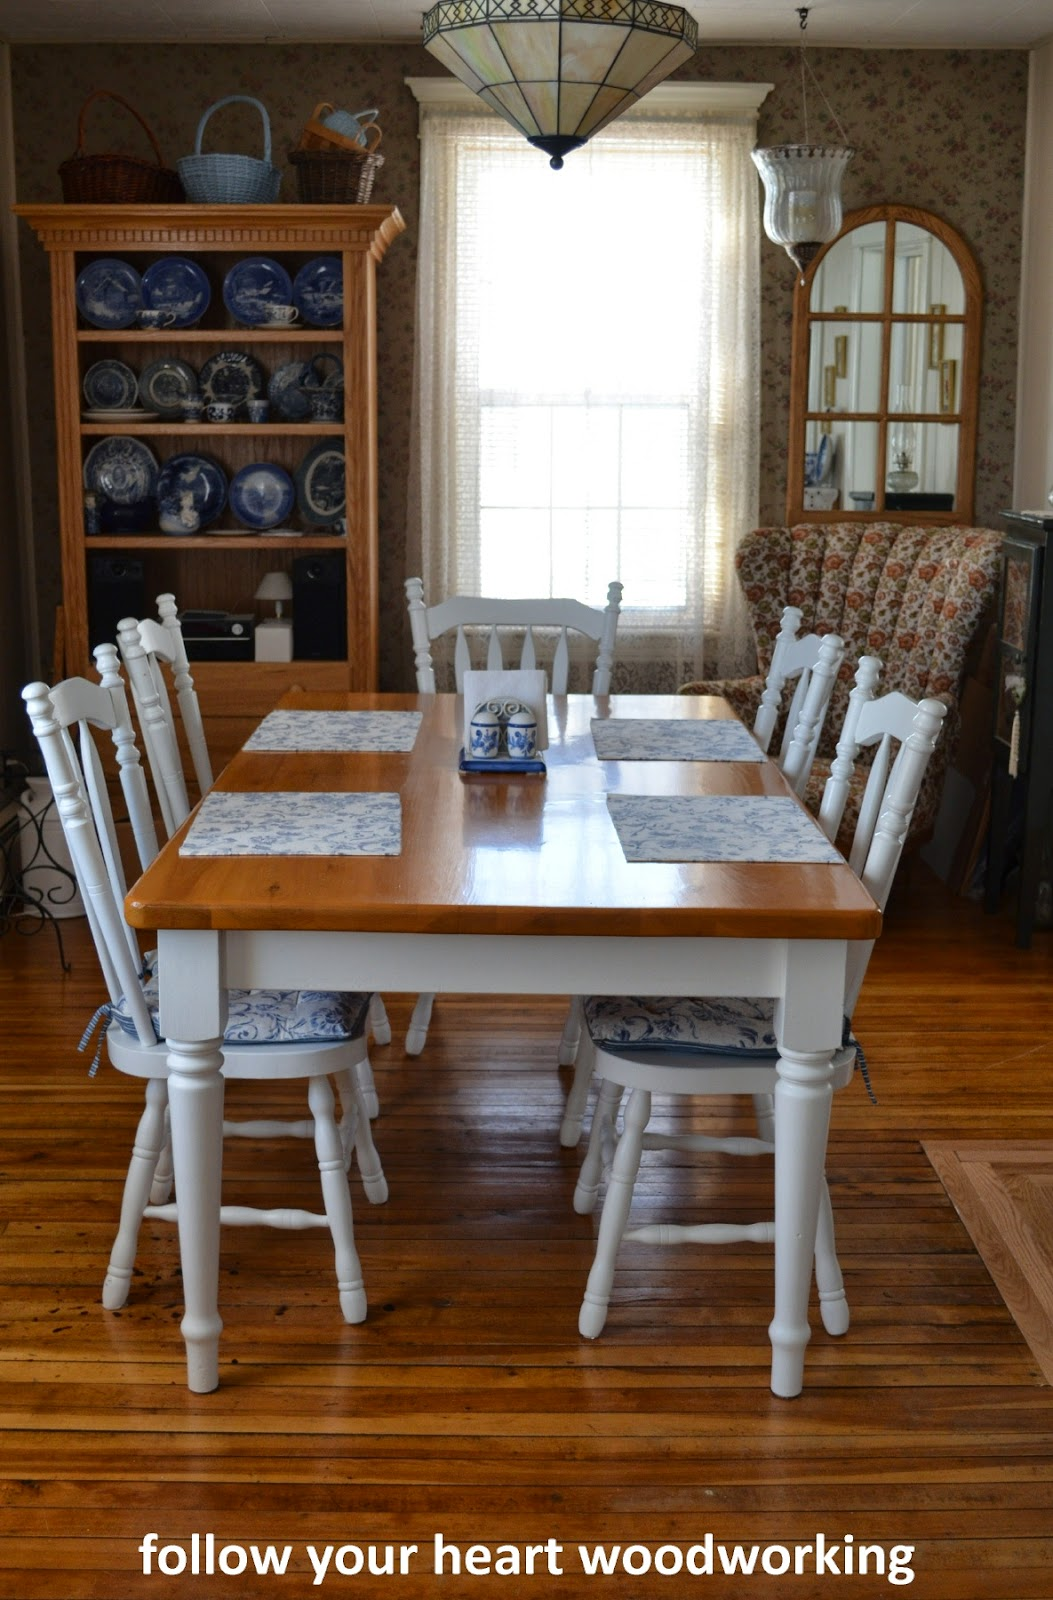 follow your heart woodworking painting a farmhouse table and chairs. Black Bedroom Furniture Sets. Home Design Ideas